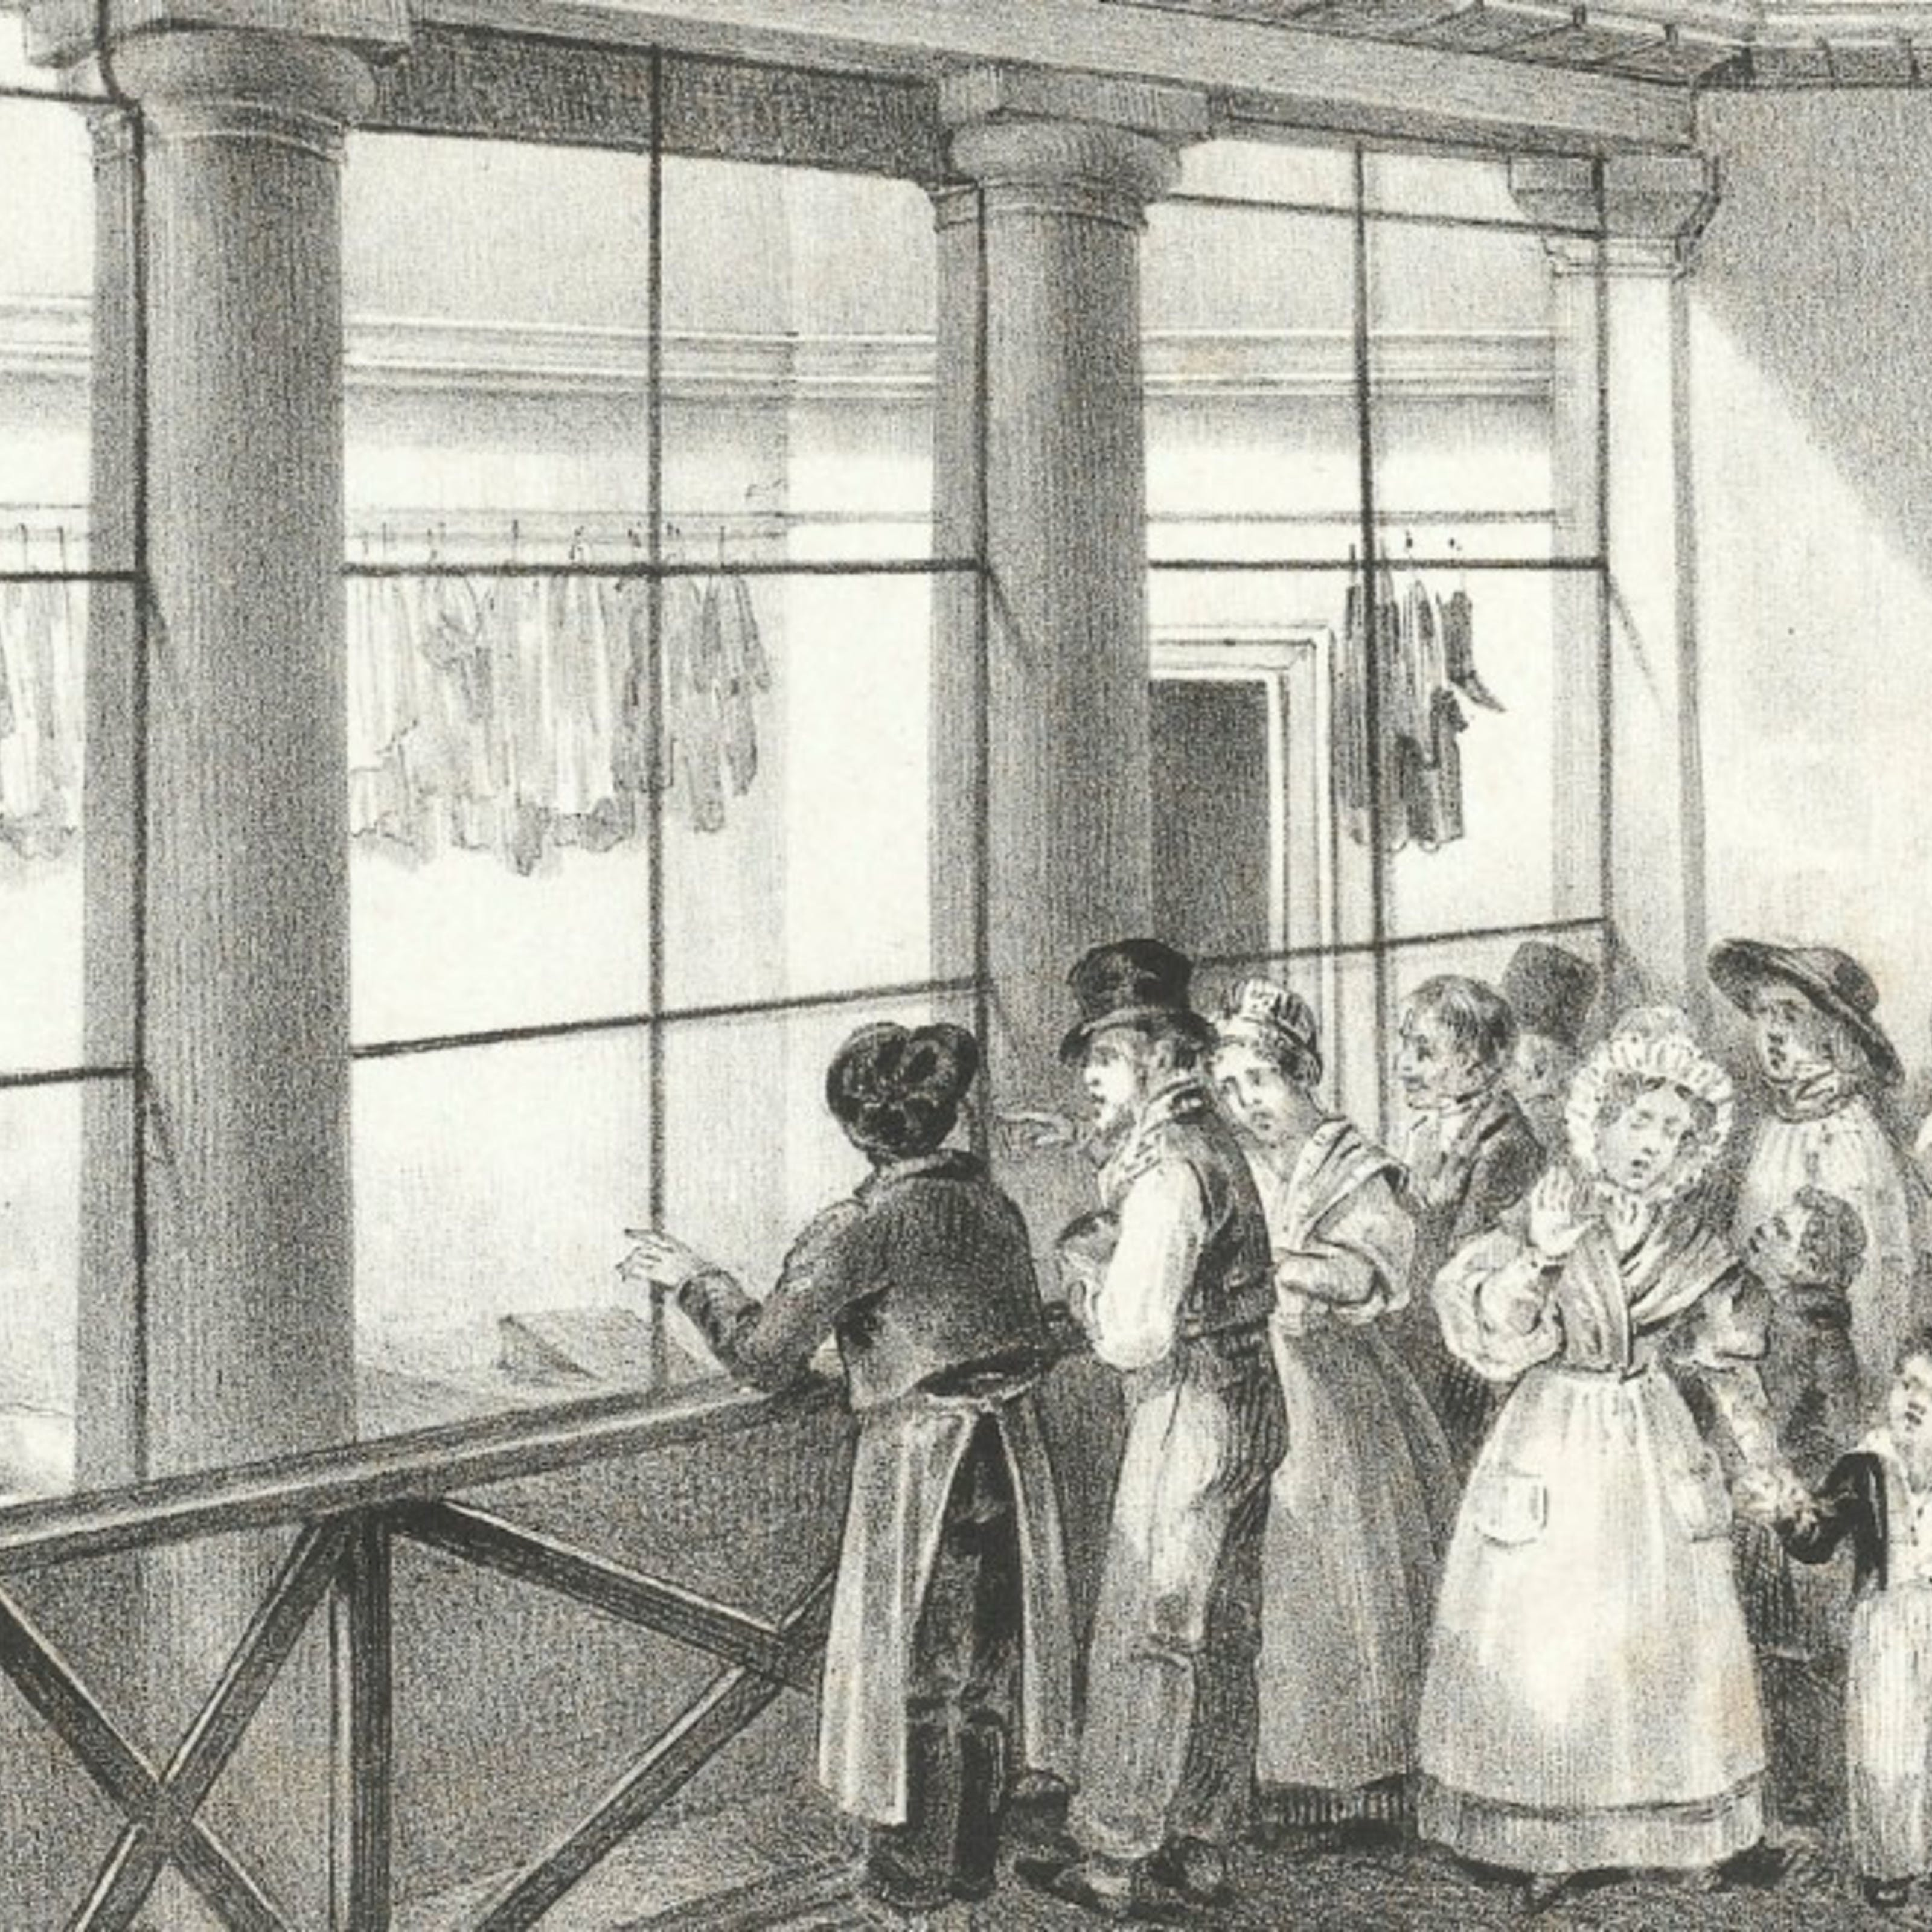 Black and white engraving of people in the 19th century viewing cadavers in a morgue in Paris